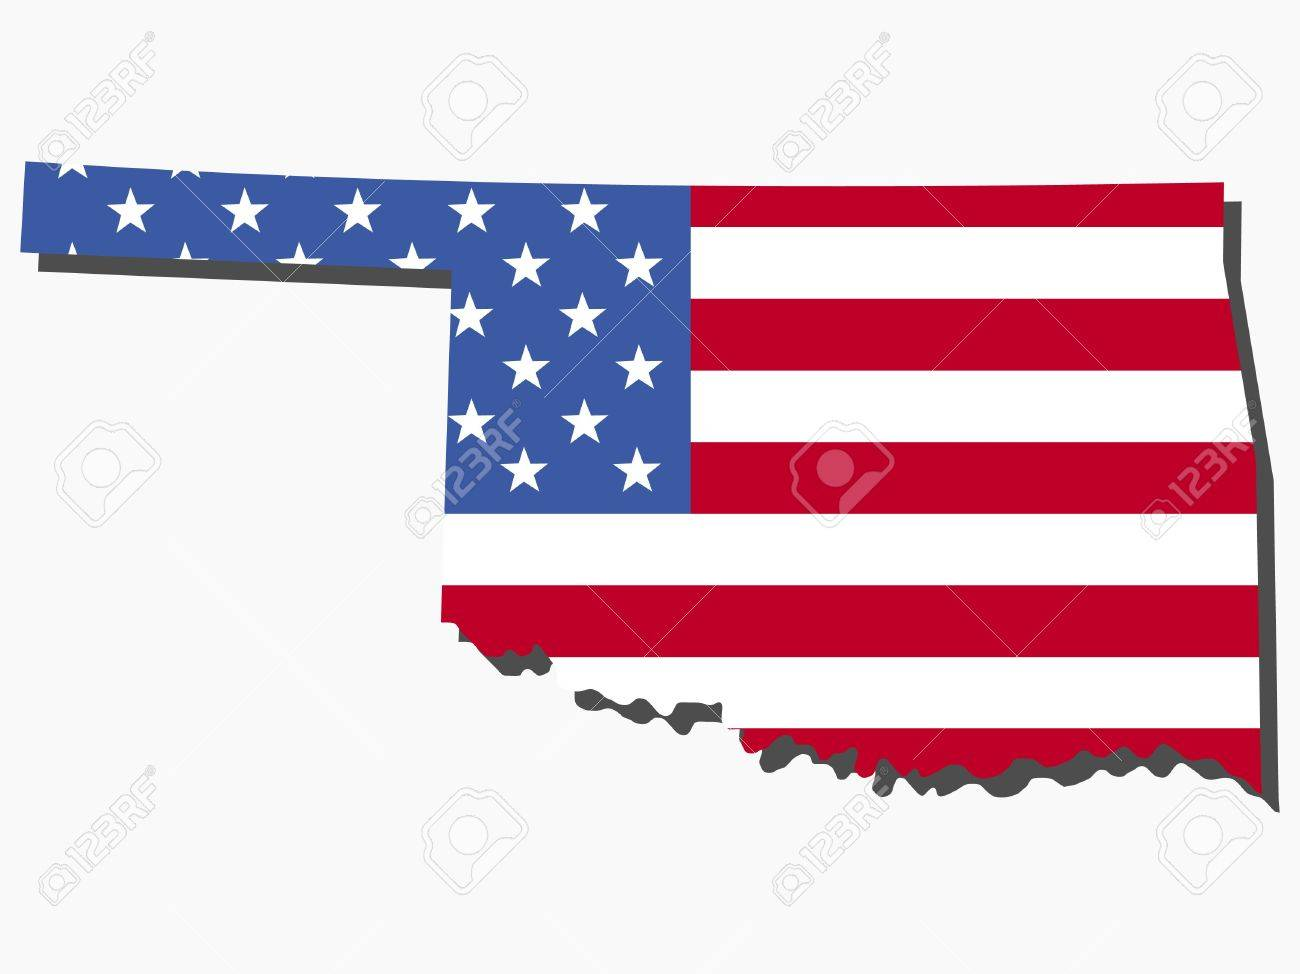 Map Of The State Of Oklahoma And American Flag Illustration Stock - Oklahoma on the us map